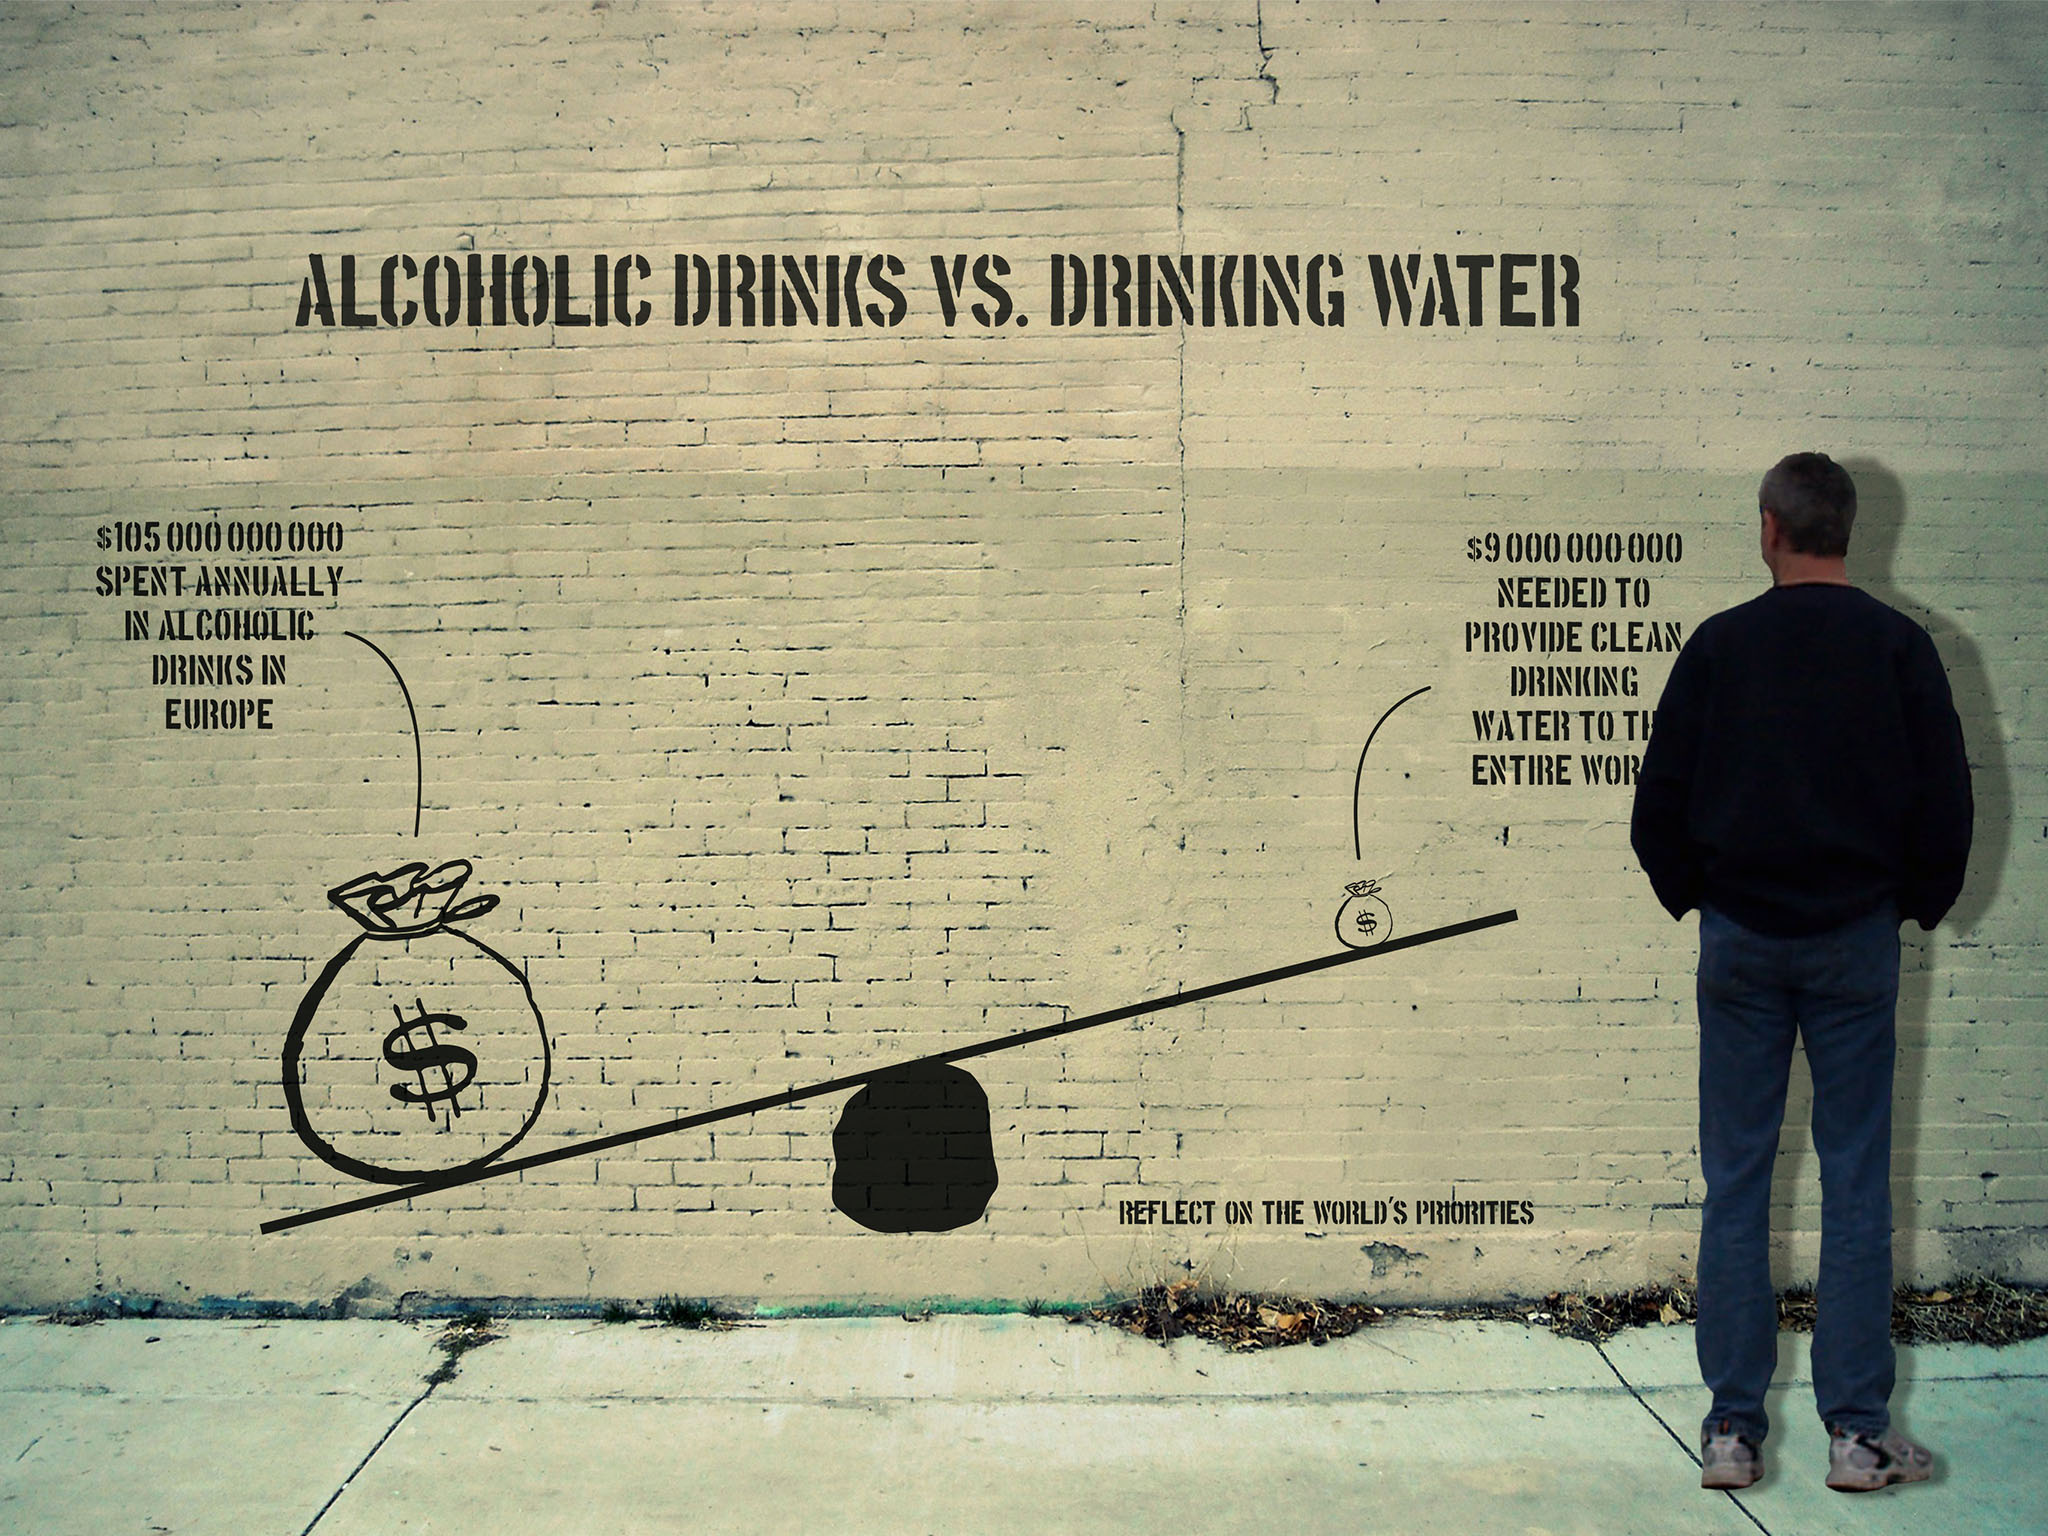 Alcoholic Drinks vs. Drinking Water